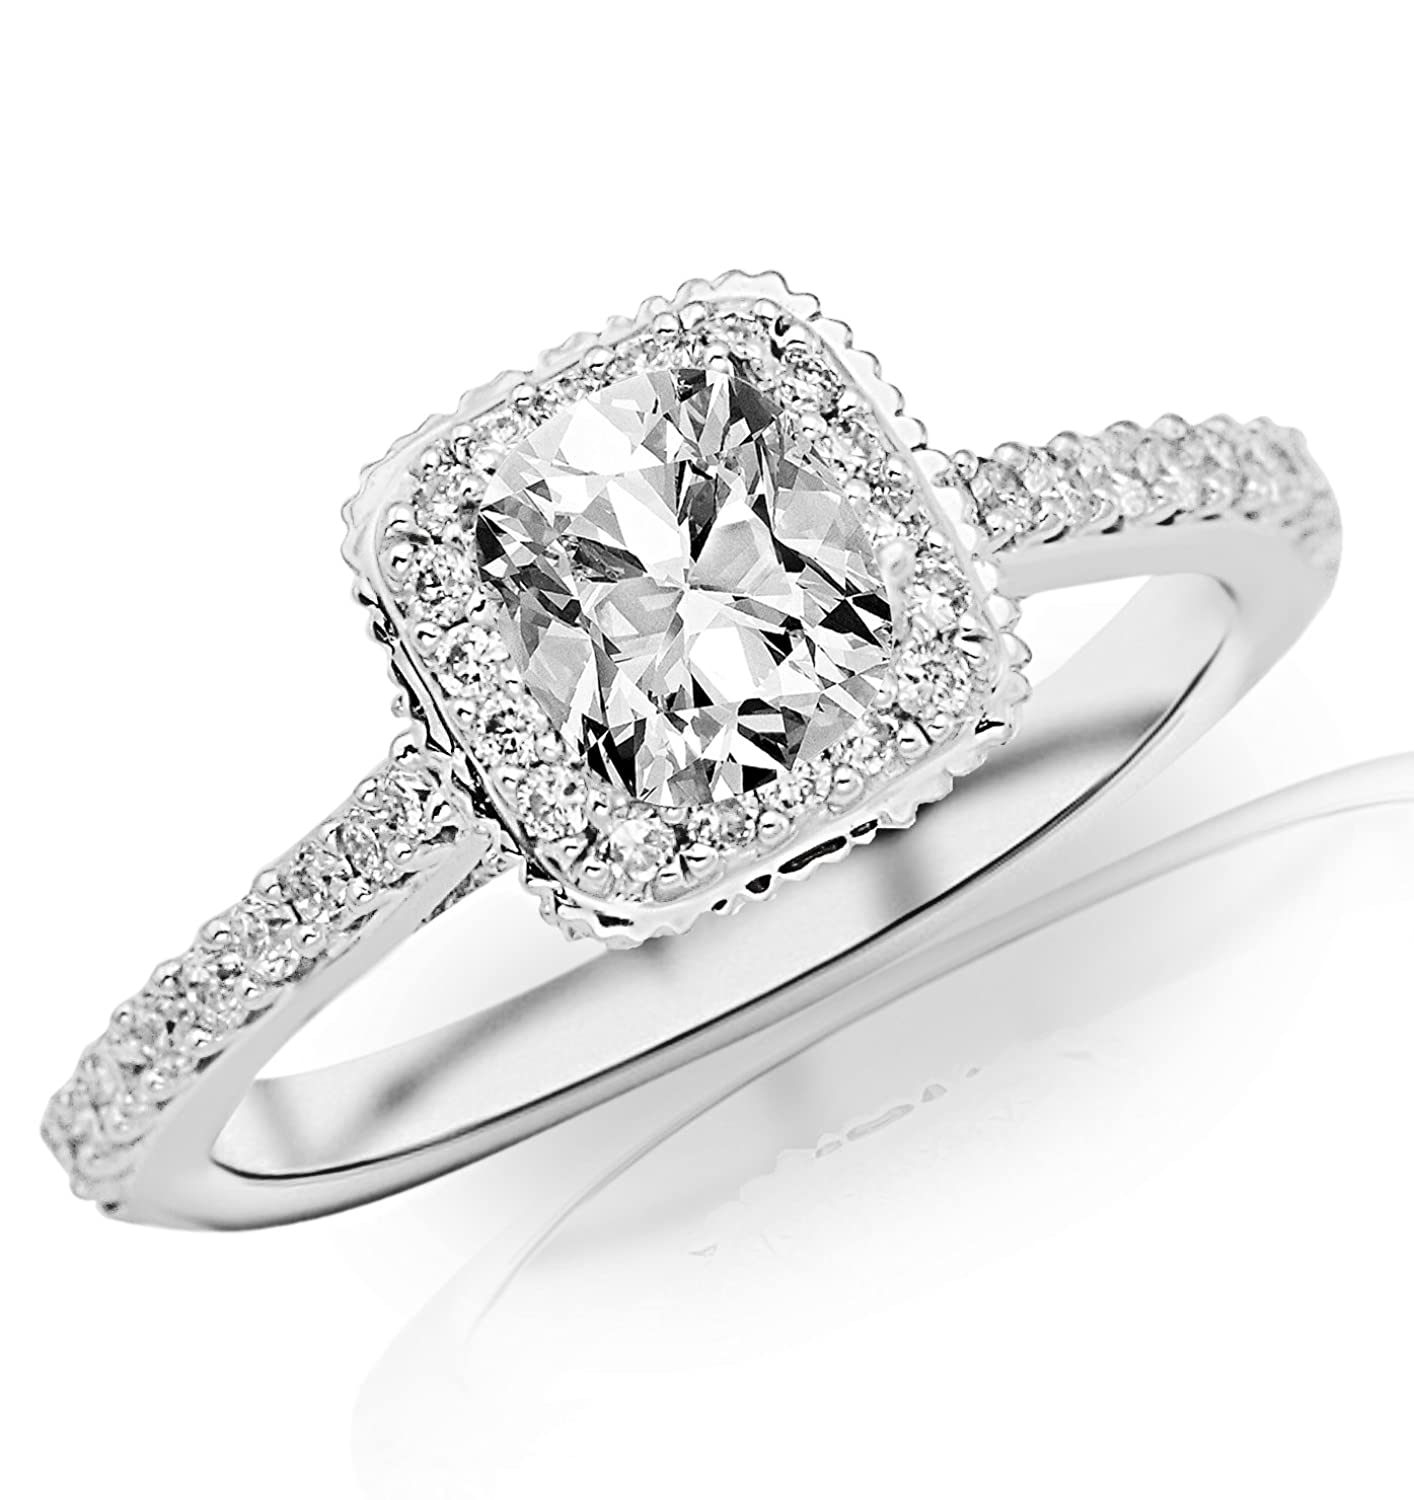 1.08 Carat GIA Certified Cushion Cut / Shape Stunning Vintage Halo Style Diamond Engagement Ring With Milgrain ( D Color , VVS2 Clarity )